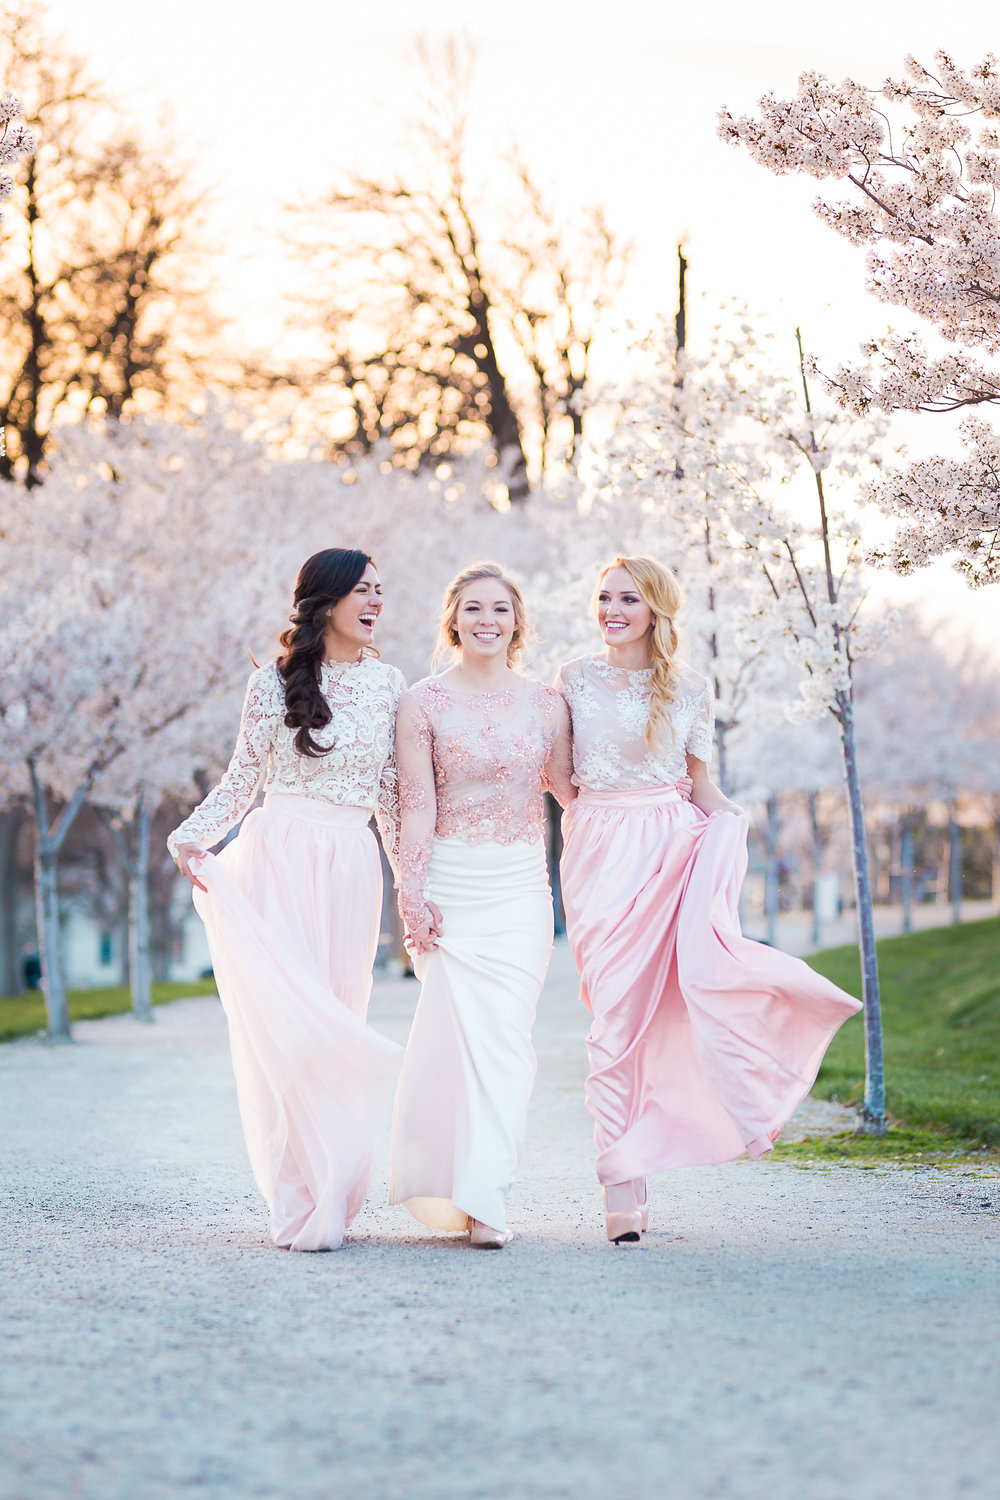 Three Brides Walk Under Blossoms